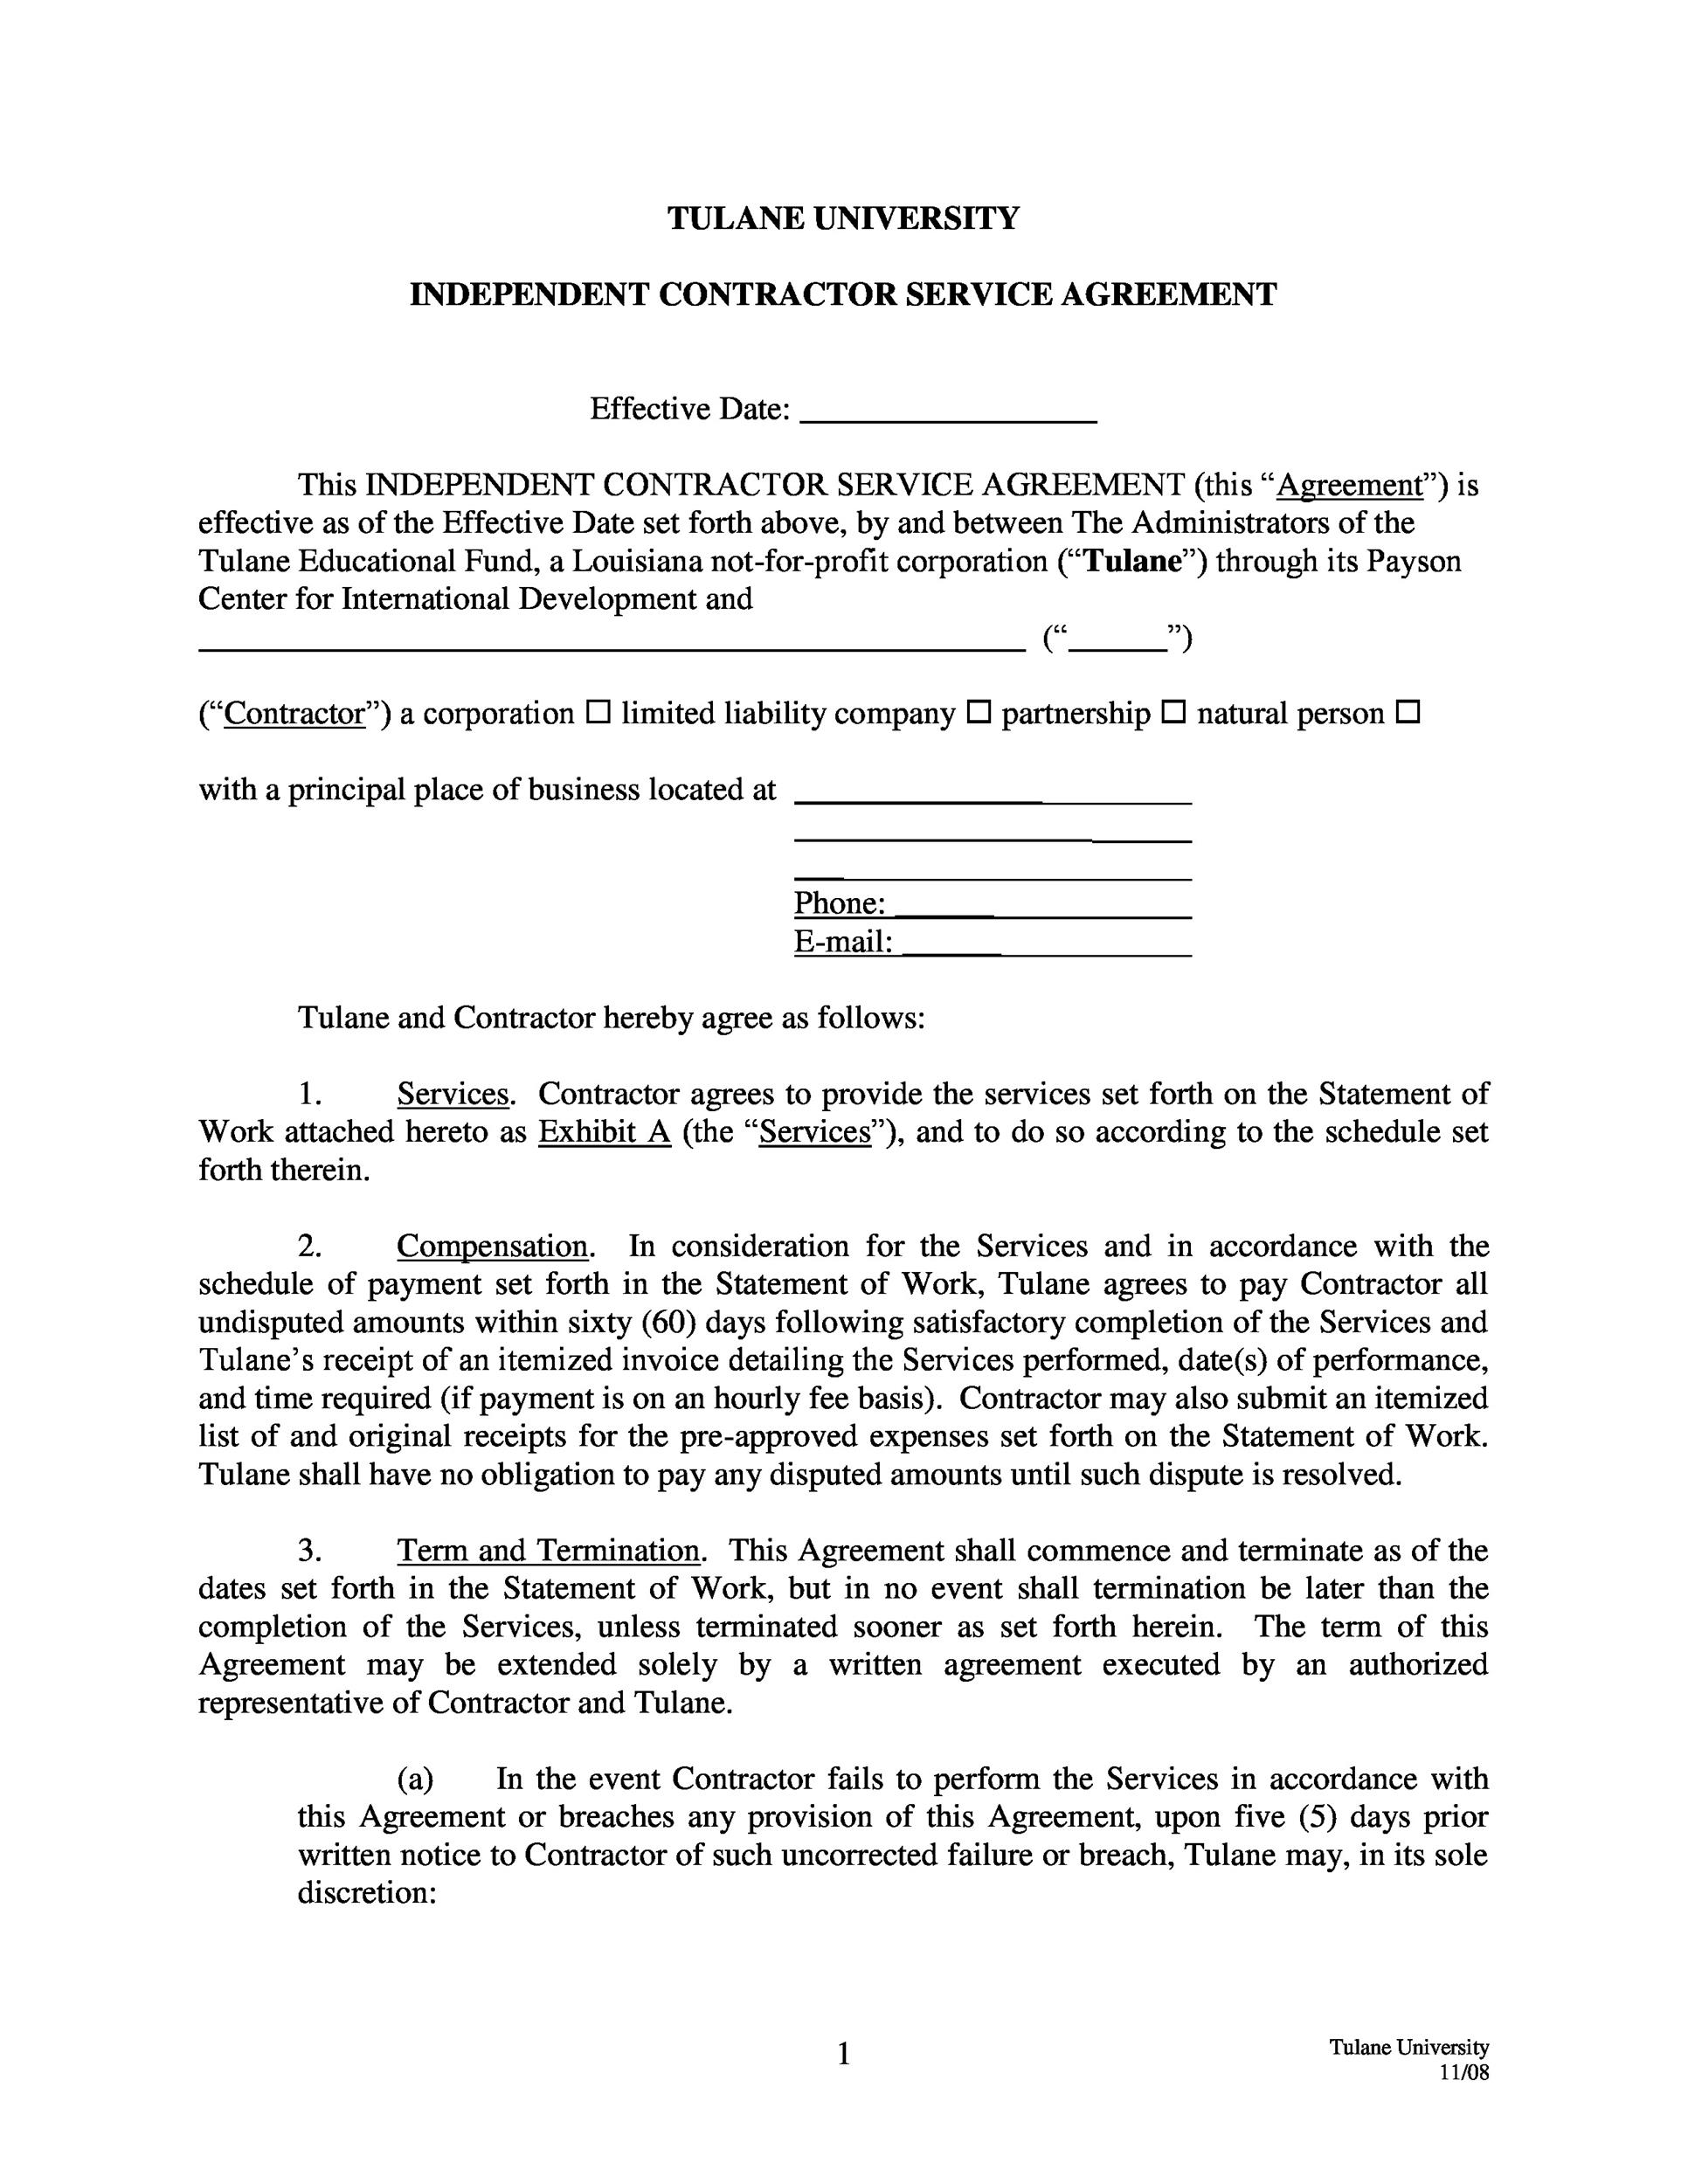 Contract agreement statement - Independent Contractor Agreement 15